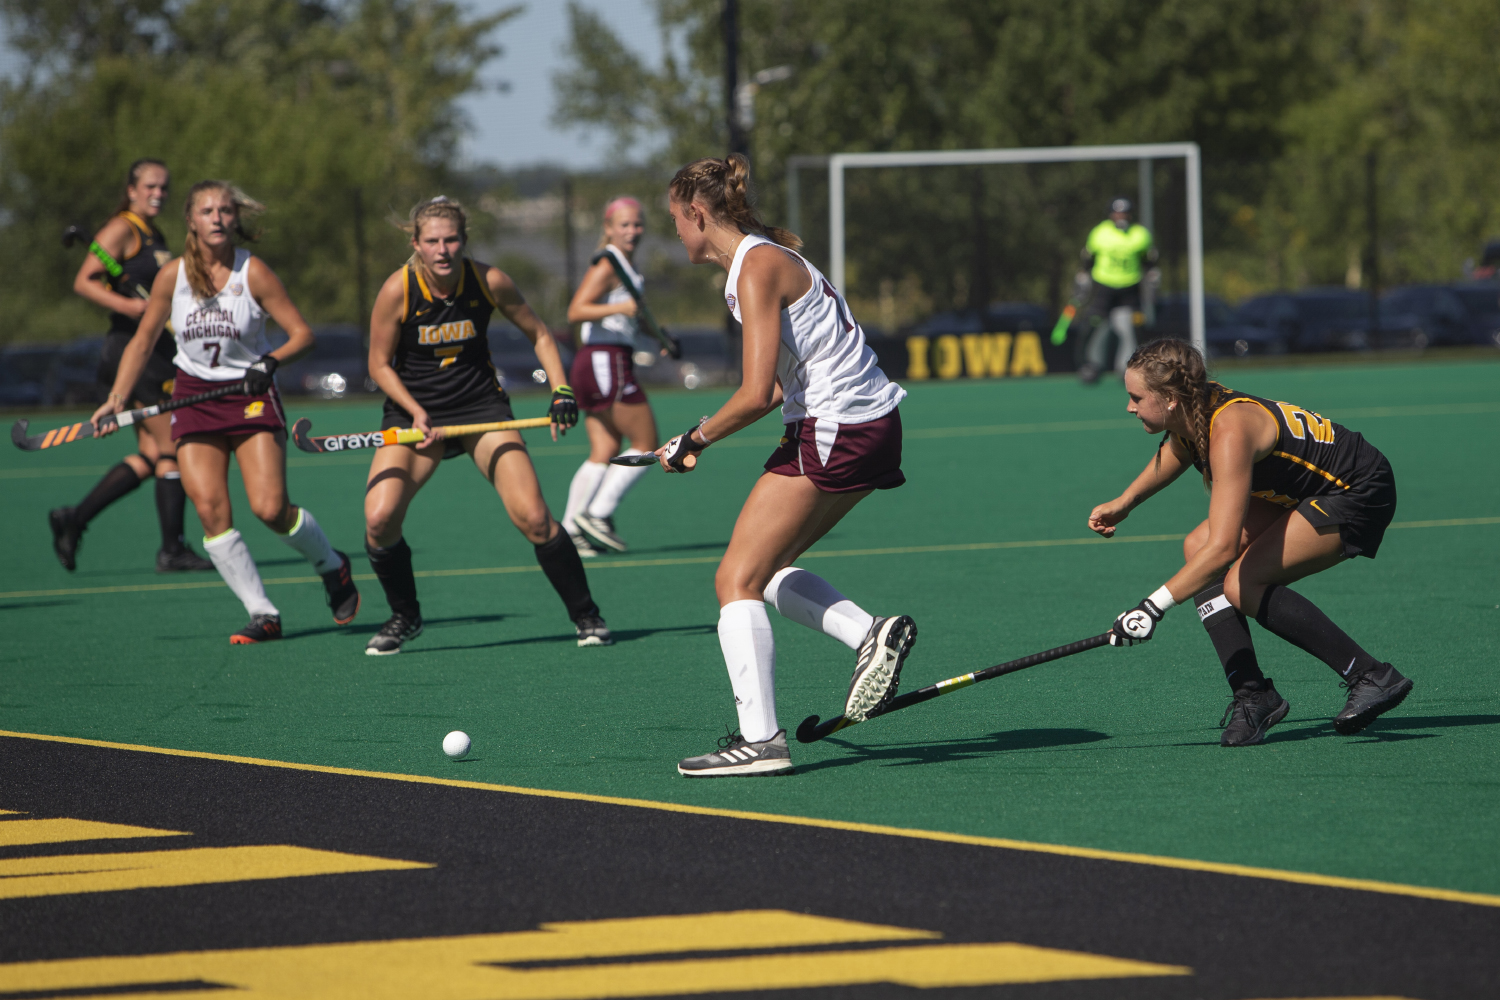 Iowa+forward+Maddy+Murphy+jabs+the+ball+out+of+bounds+during+a+field+hockey+game+between+Iowa+and+Central+Michigan+at+Grant+Field+on+Friday%2C+September+6%2C+2019.+The+Hawkeyes+defeated+the+Chippewas%2C+11-0.